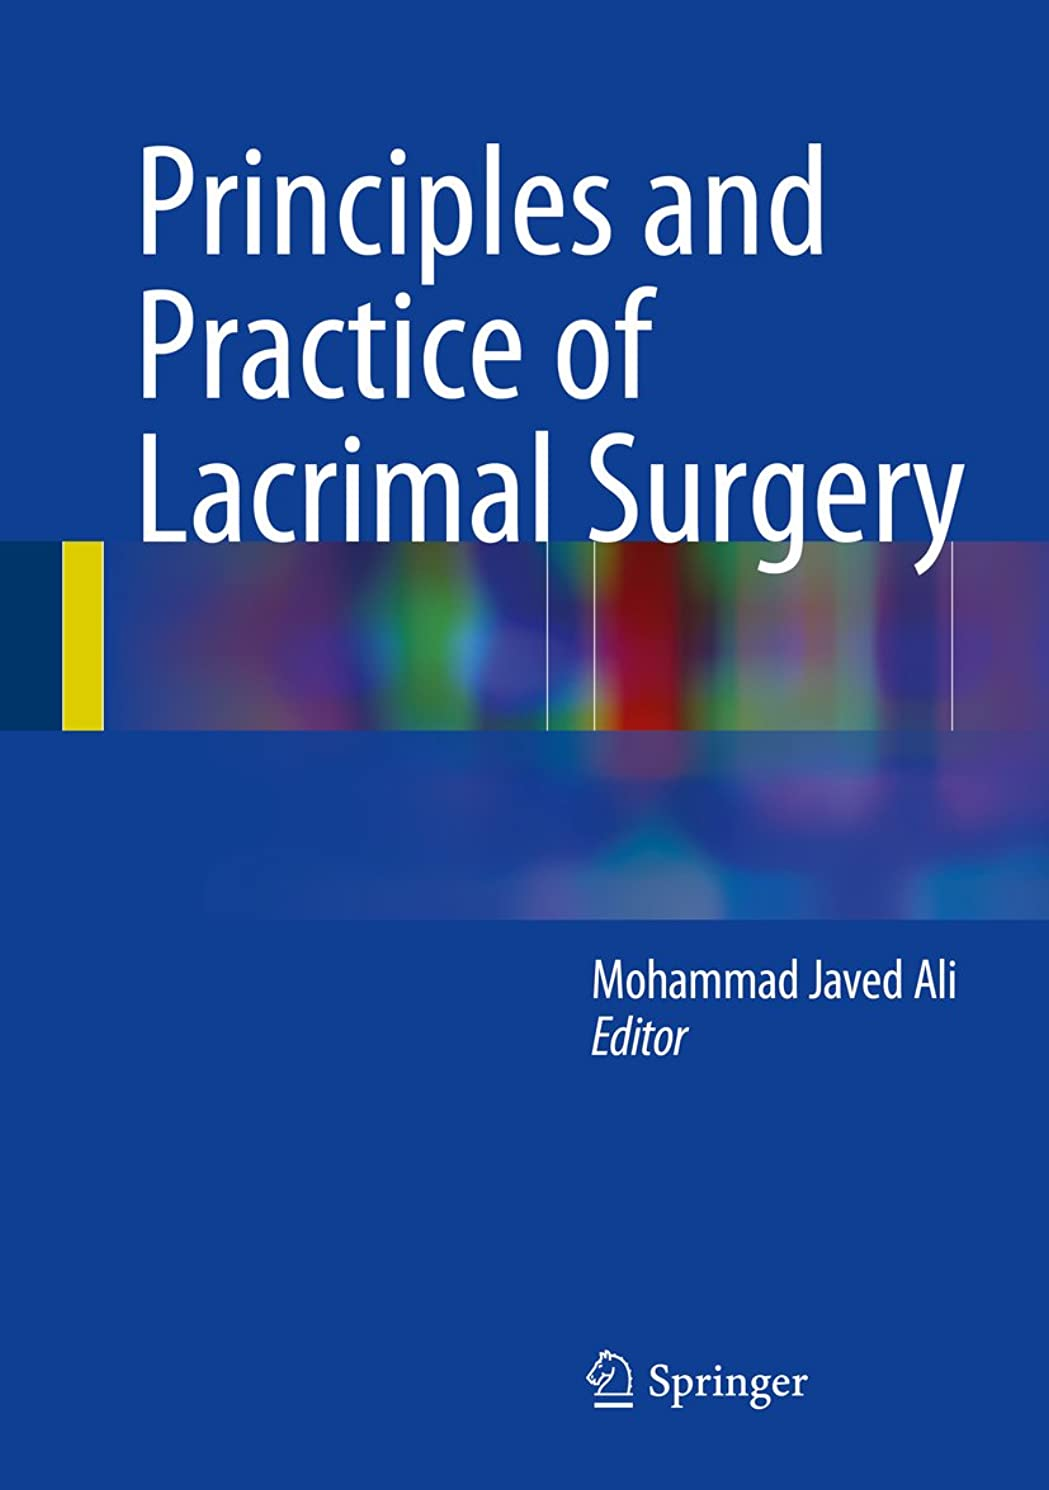 メトロポリタンビルマ戦艦Principles and Practice of Lacrimal Surgery (English Edition)